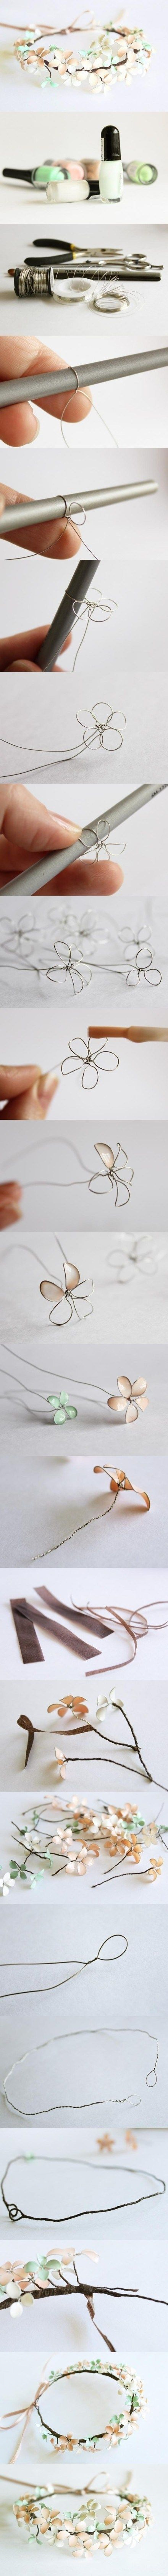 Make pretty flowers with thin wire, glue and nail polish!